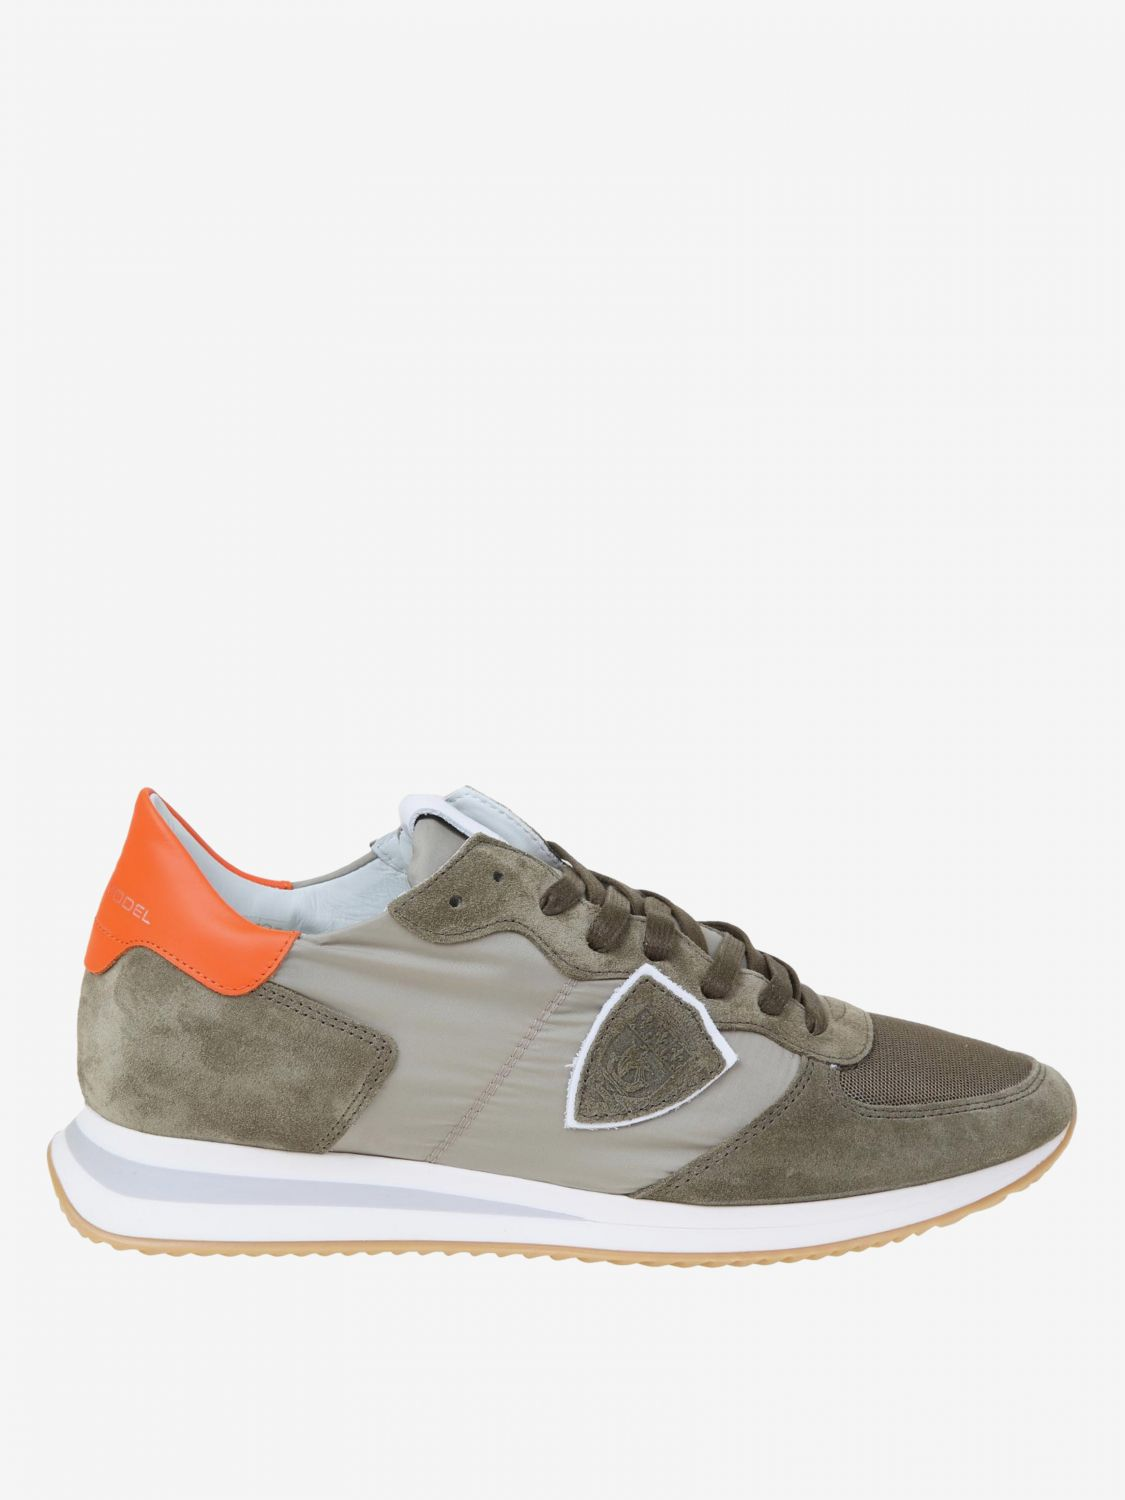 Trainers men Philippe Model military 1